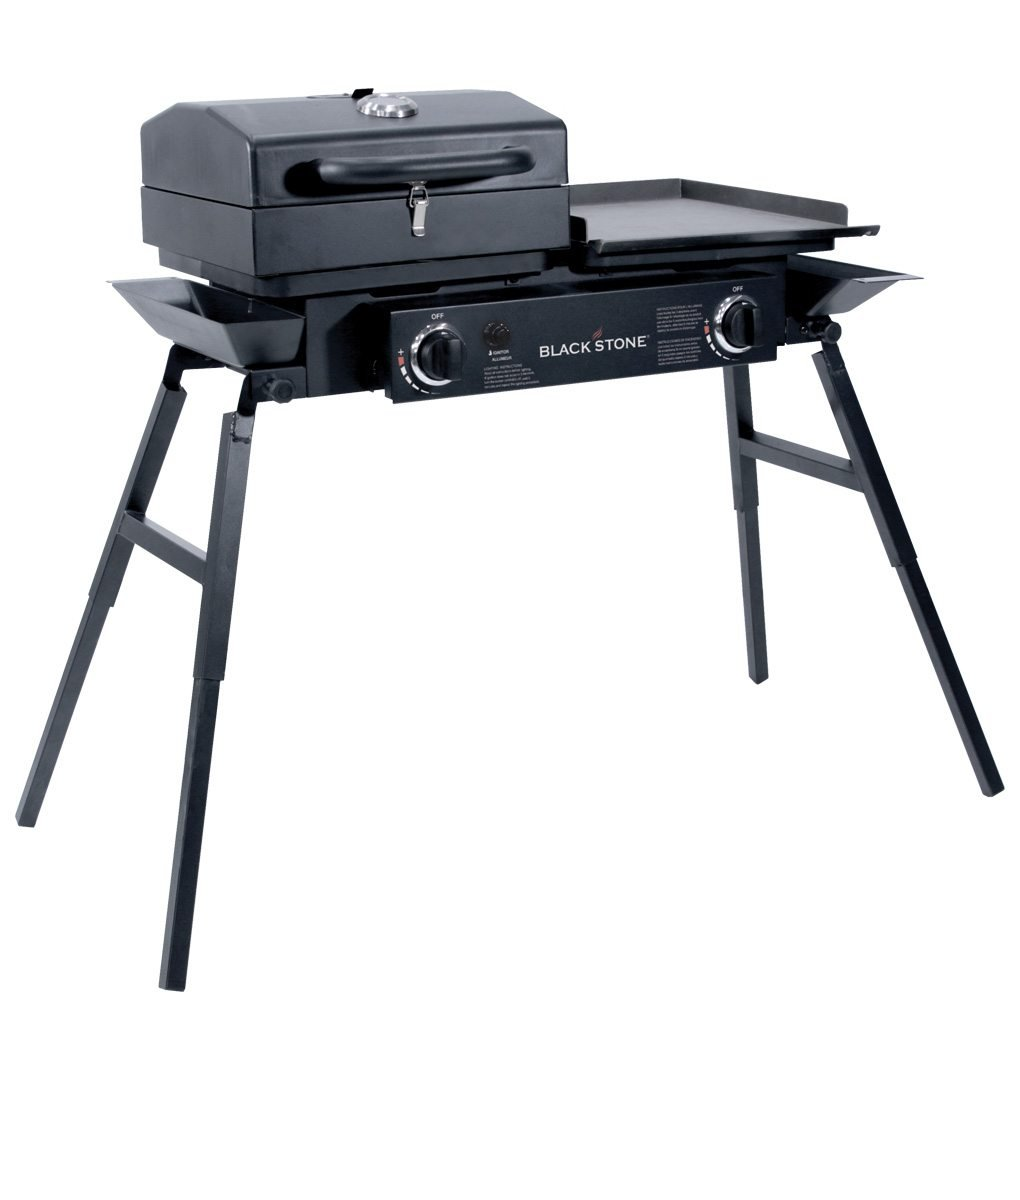 """Barbecue Box Portable Gas Grill and Griddle Combo Fishing Blackstone Grills Tailgater Two Open Burners /"""" Griddle Top Camping Stove Great for Hunting Adjustable Legs Tailgating and More"""